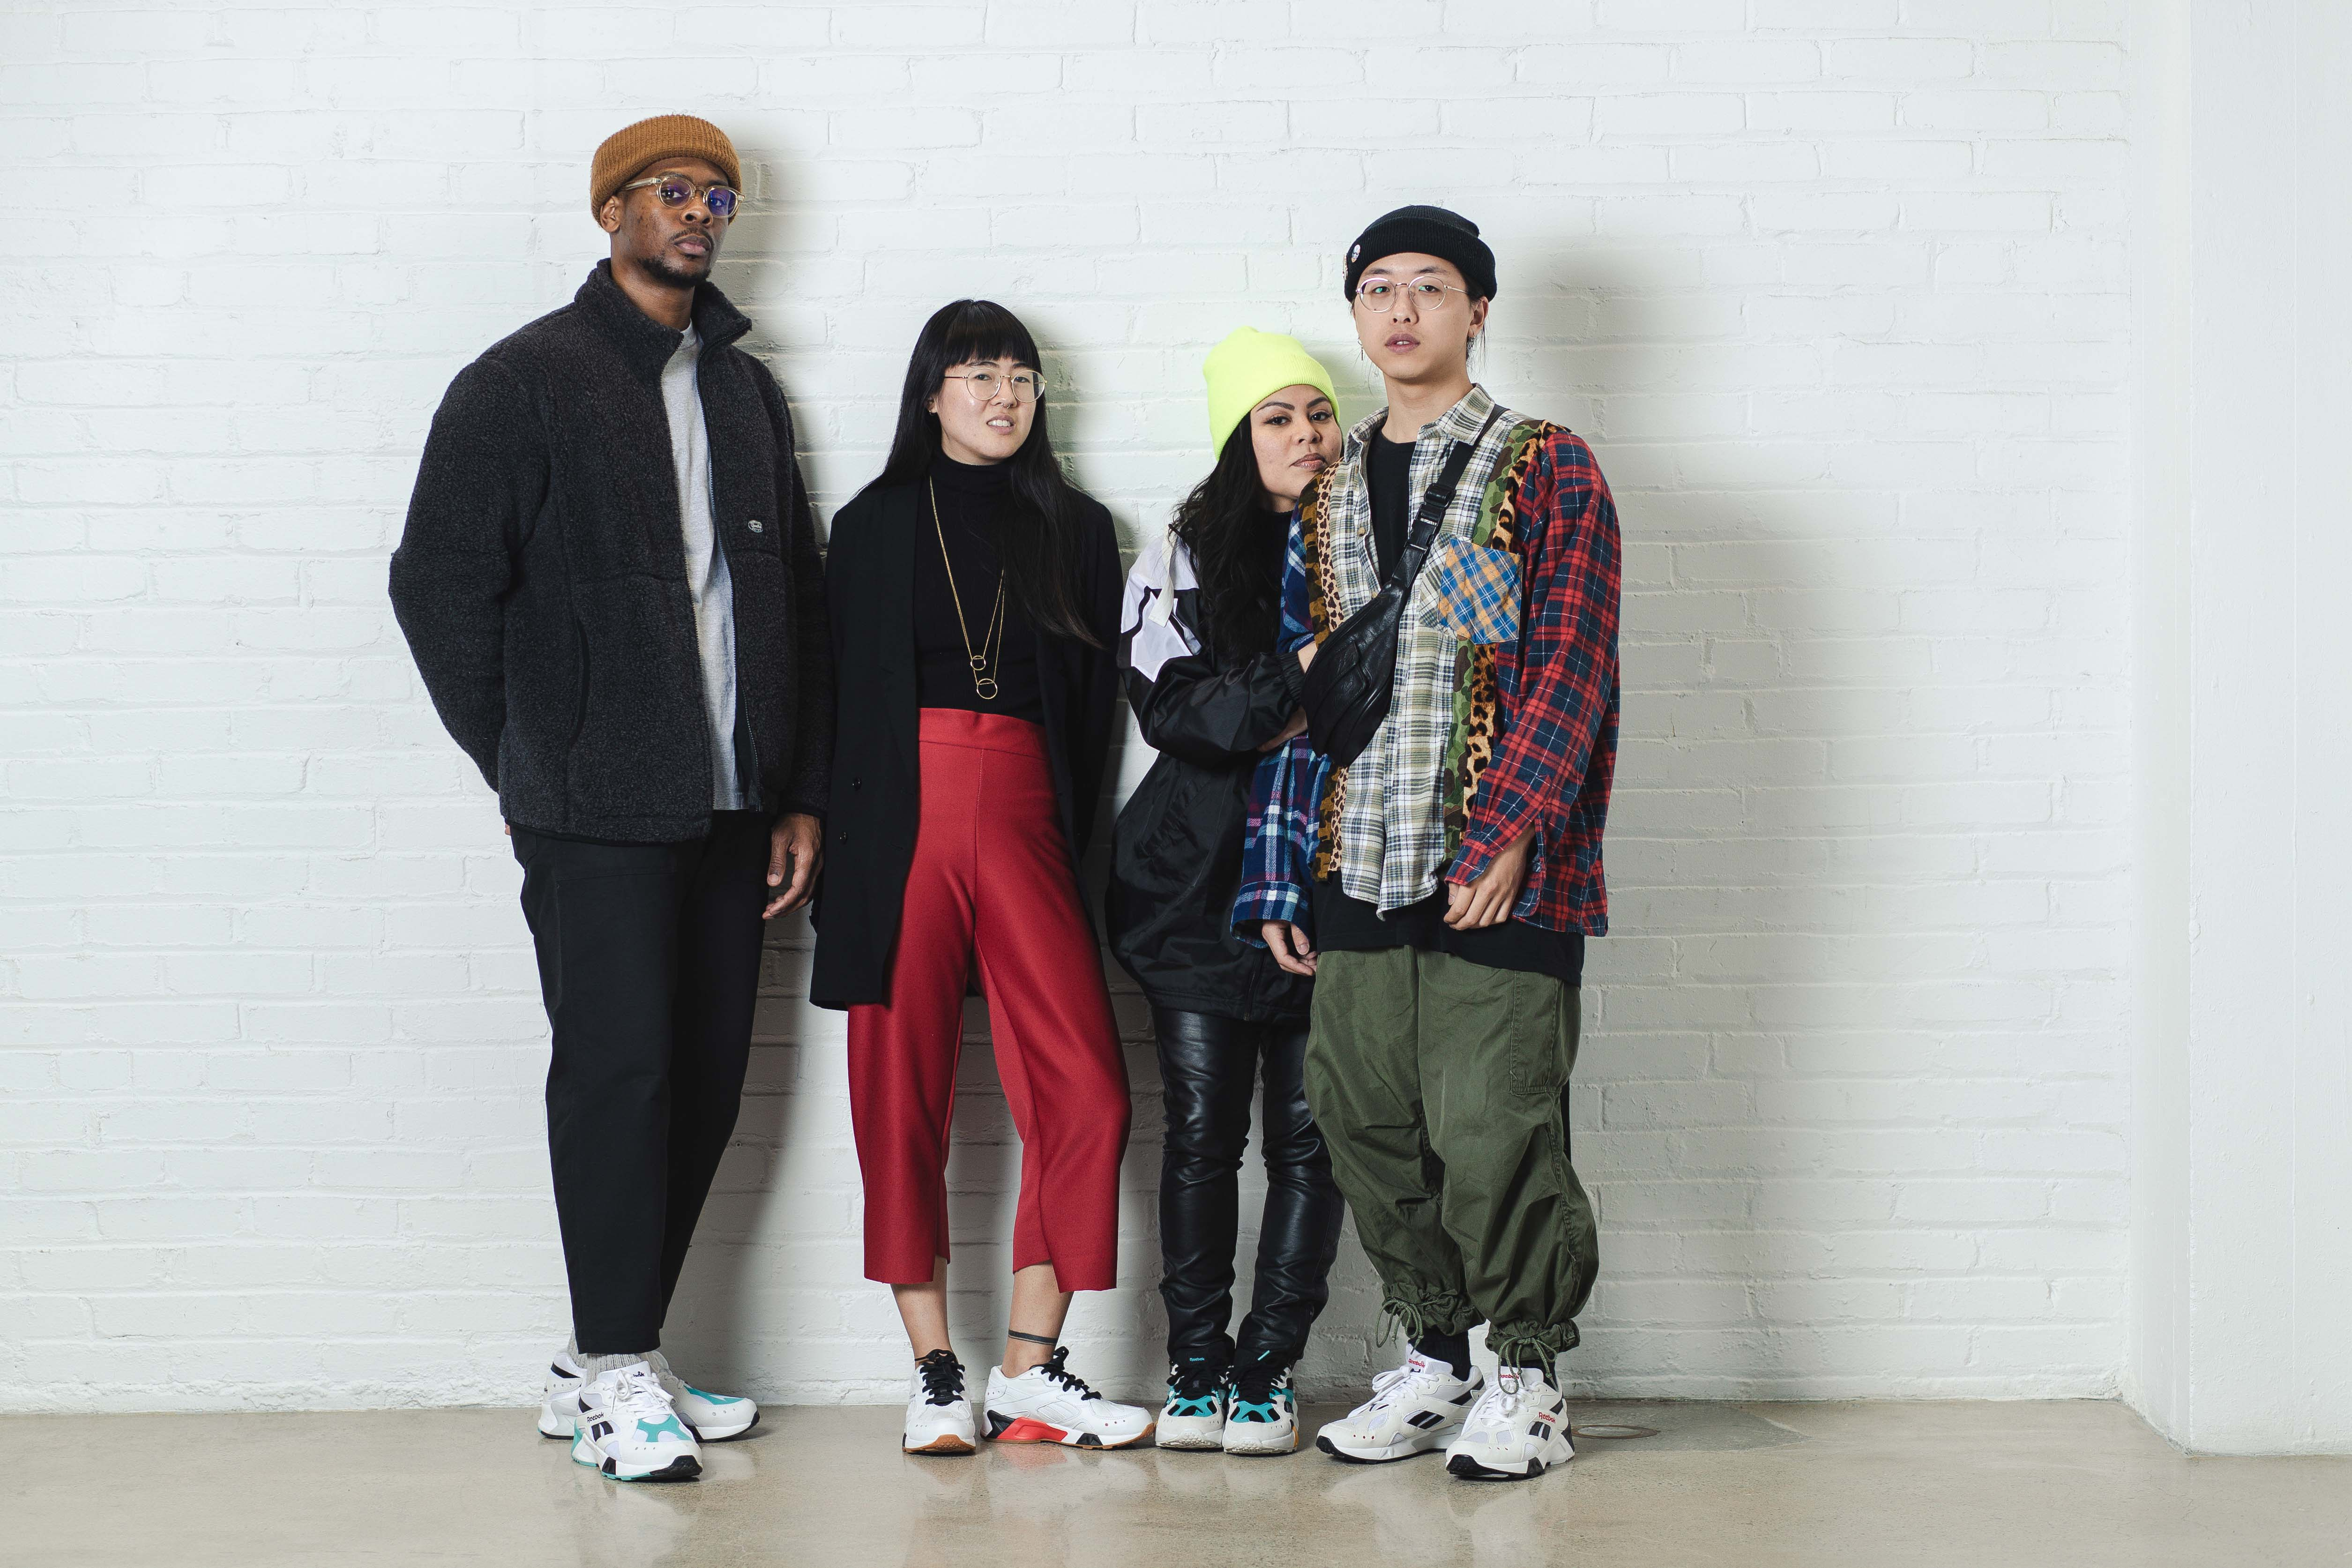 Intacto Imperio policía  How 5 of our Designers Wear the Aztrek